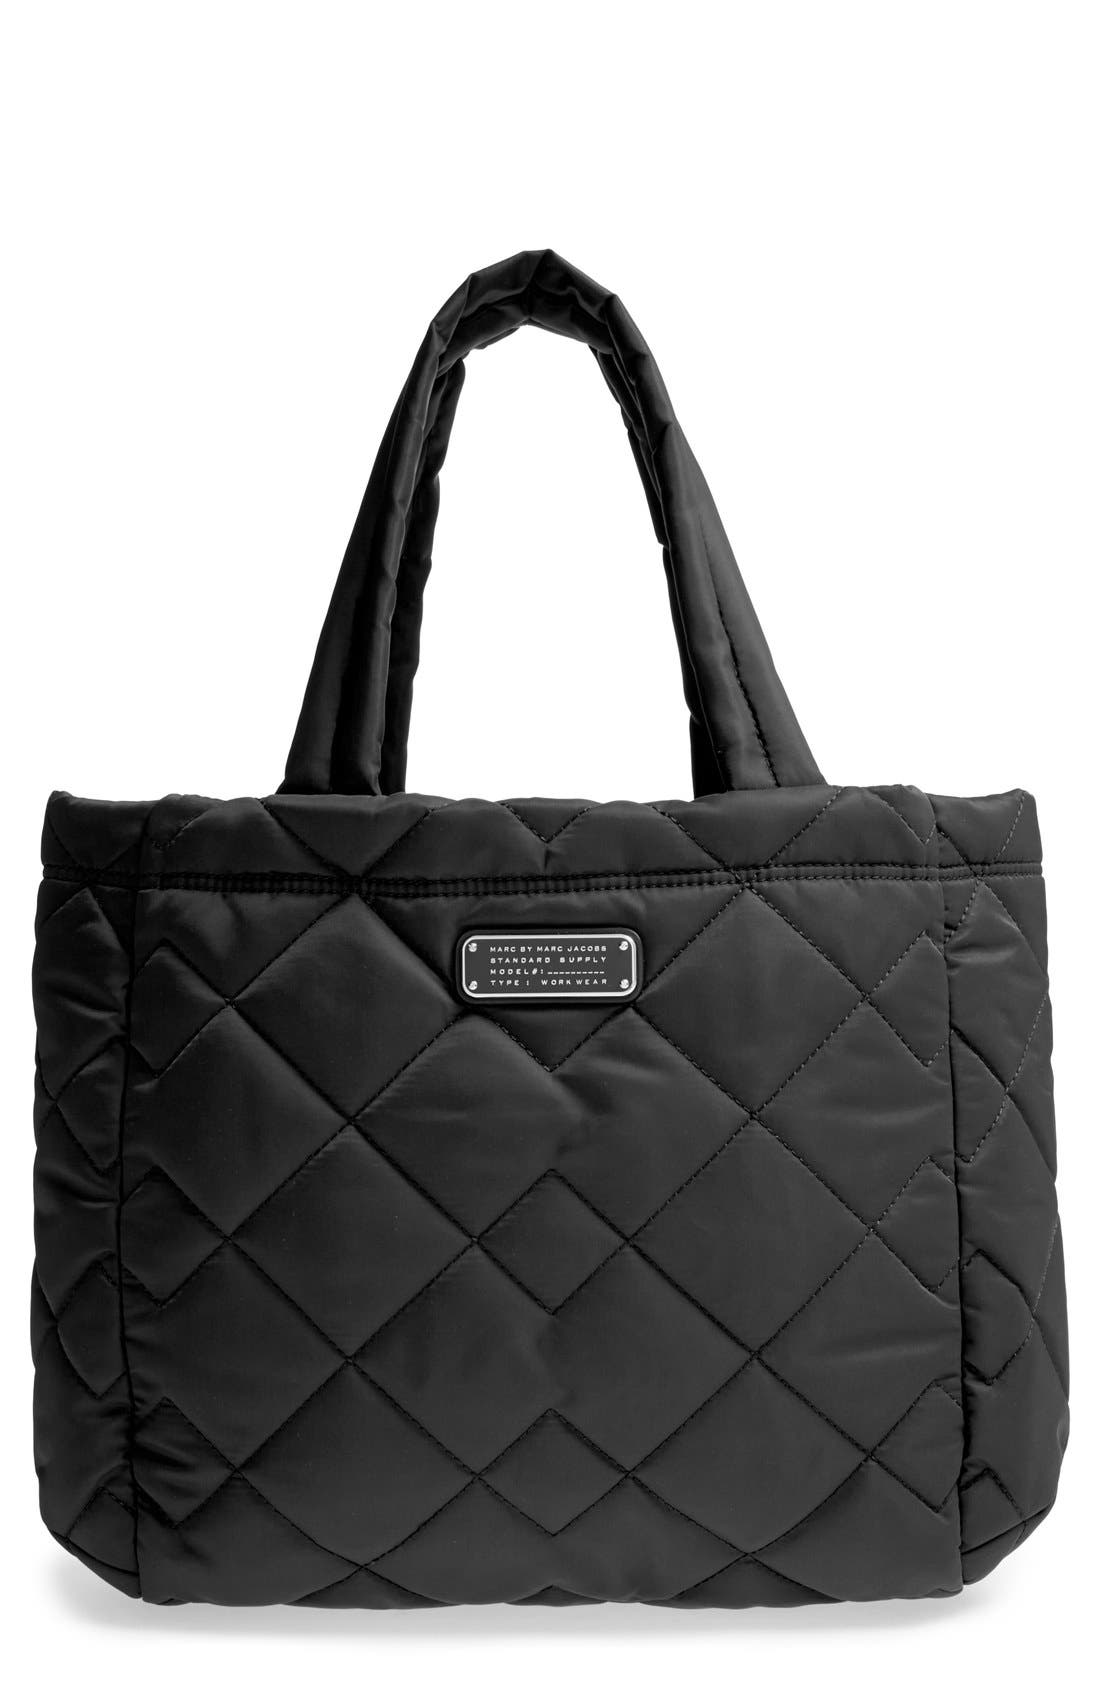 MARC BY MARC JACOBS 'Small Crosby' Quilted Nylon Tote, Main, color, 001